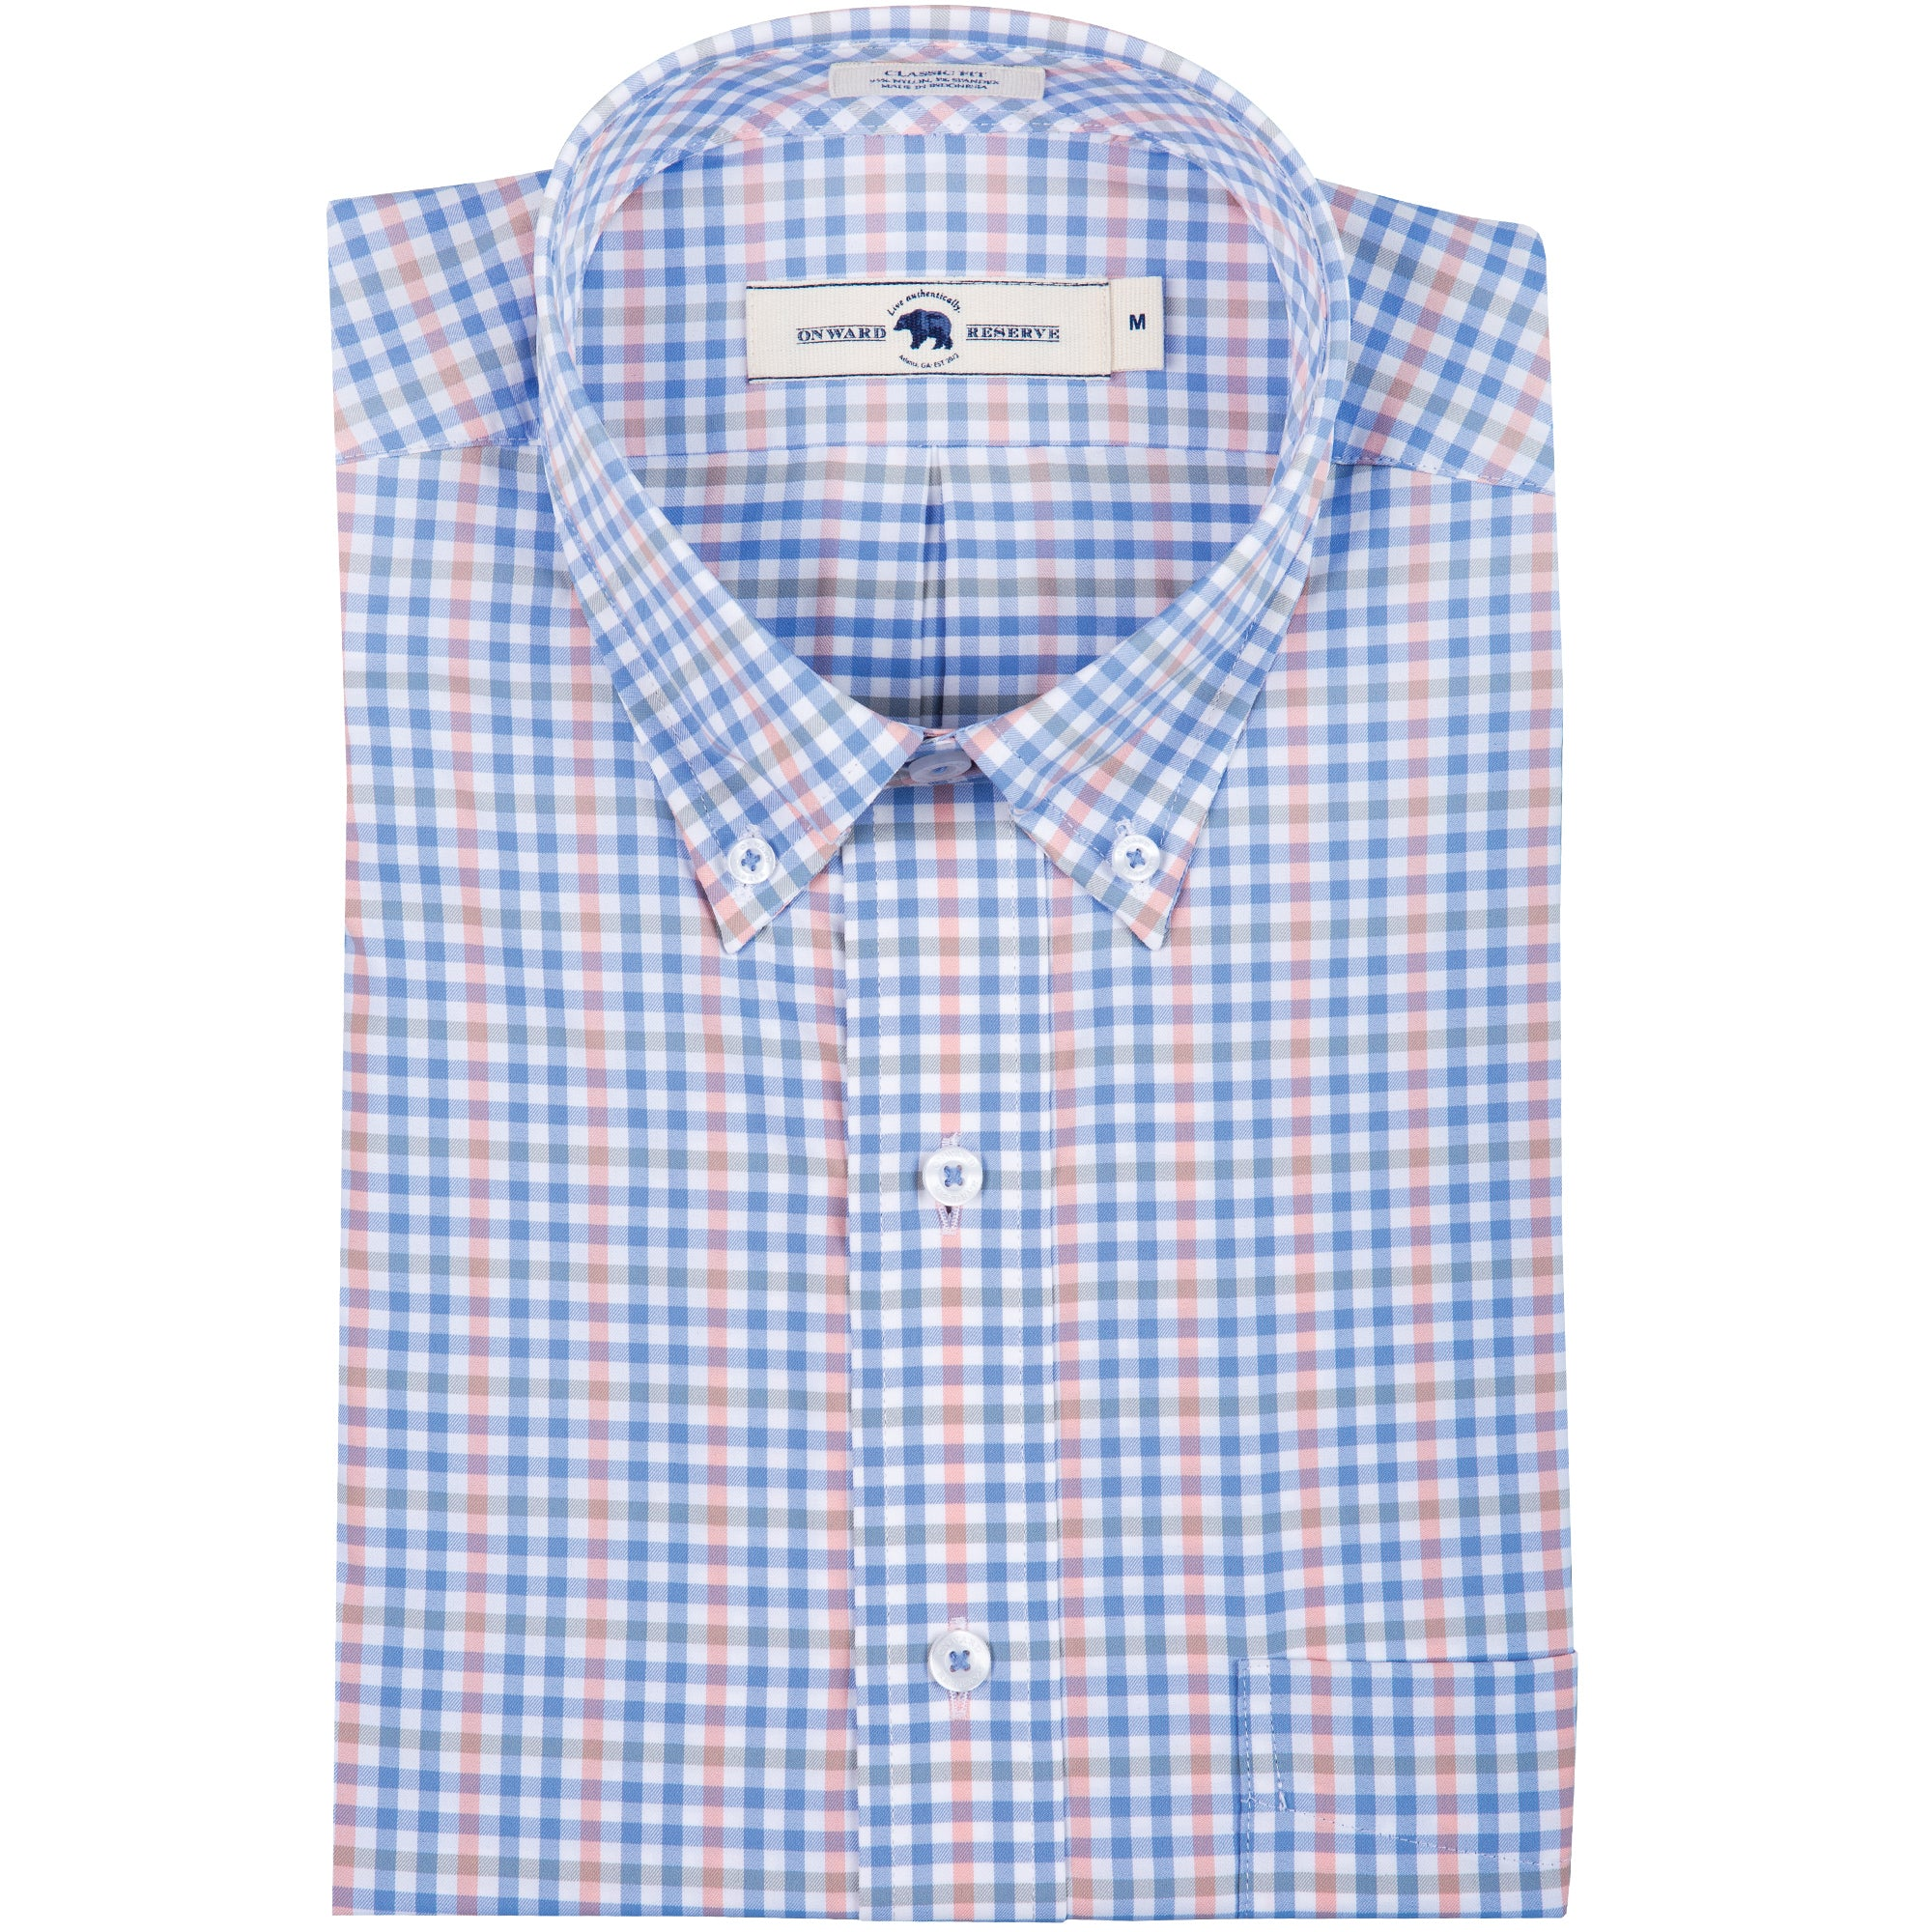 Redfern Classic Fit Performance Button Down